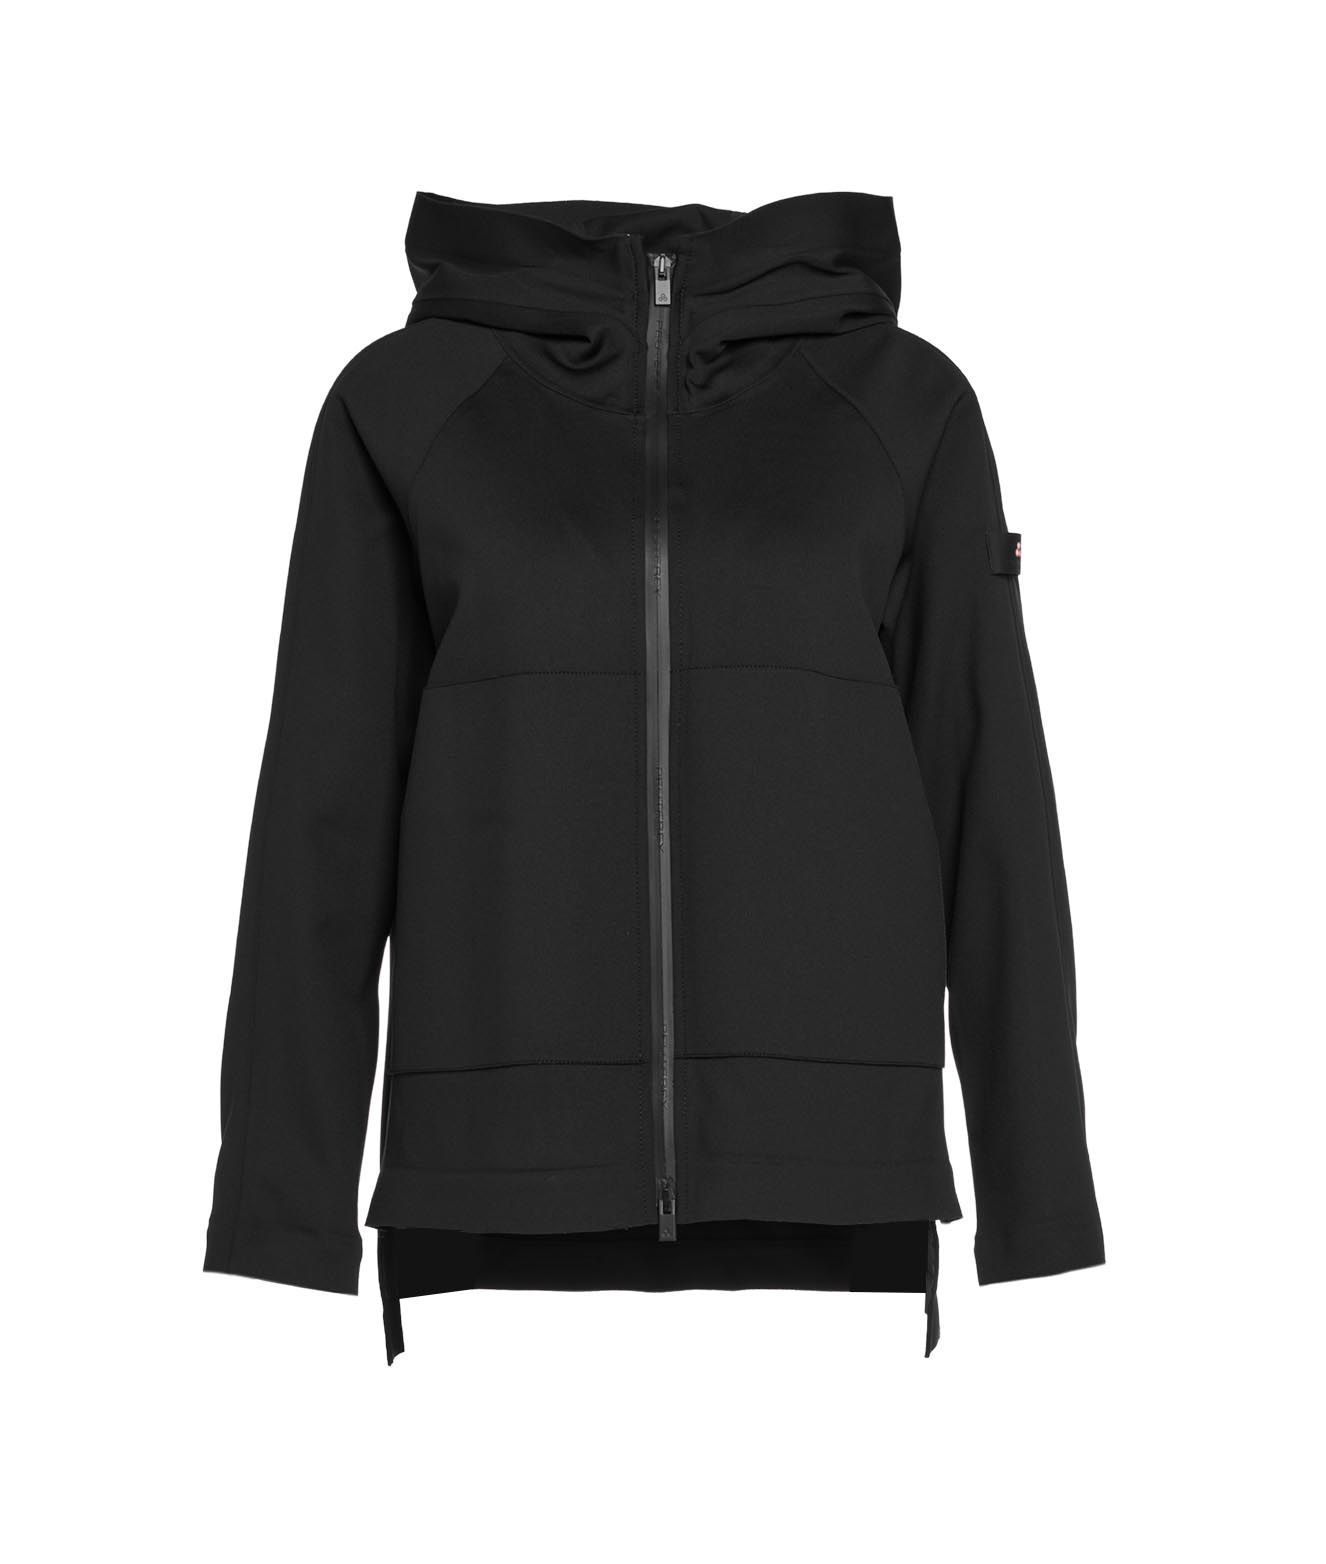 Peuterey PEUTEREY WOMEN'S PED384701191546NER BLACK OTHER MATERIALS OUTERWEAR JACKET